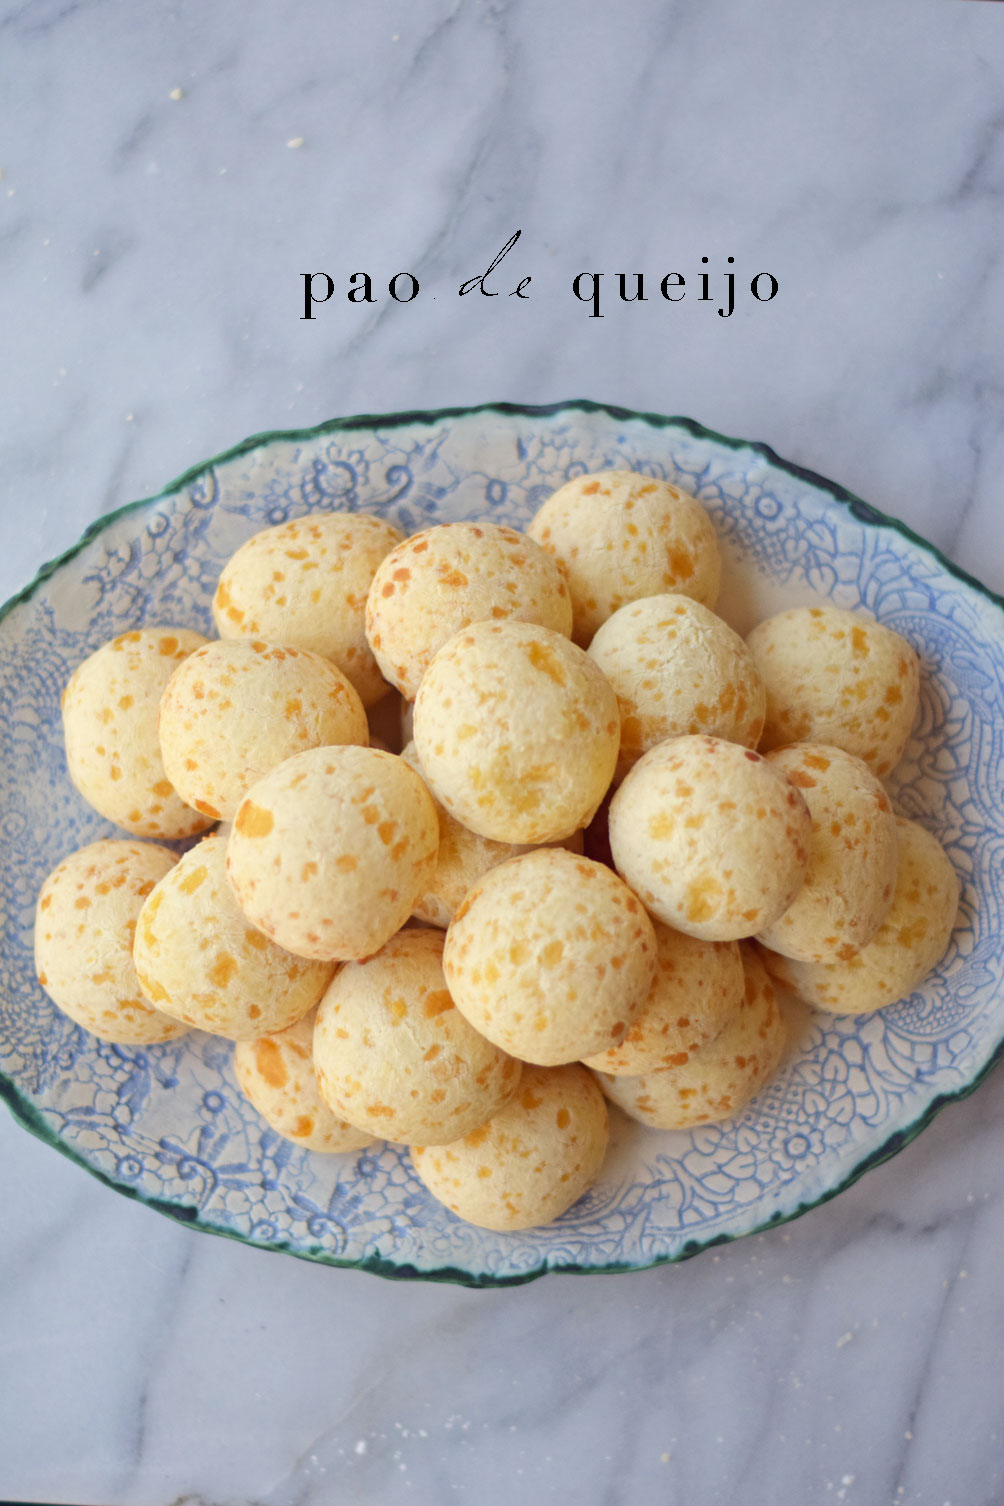 pao de queijo brazilian bread recipe for Rio 2016 Olympics - Leslie Musser, one brass fox